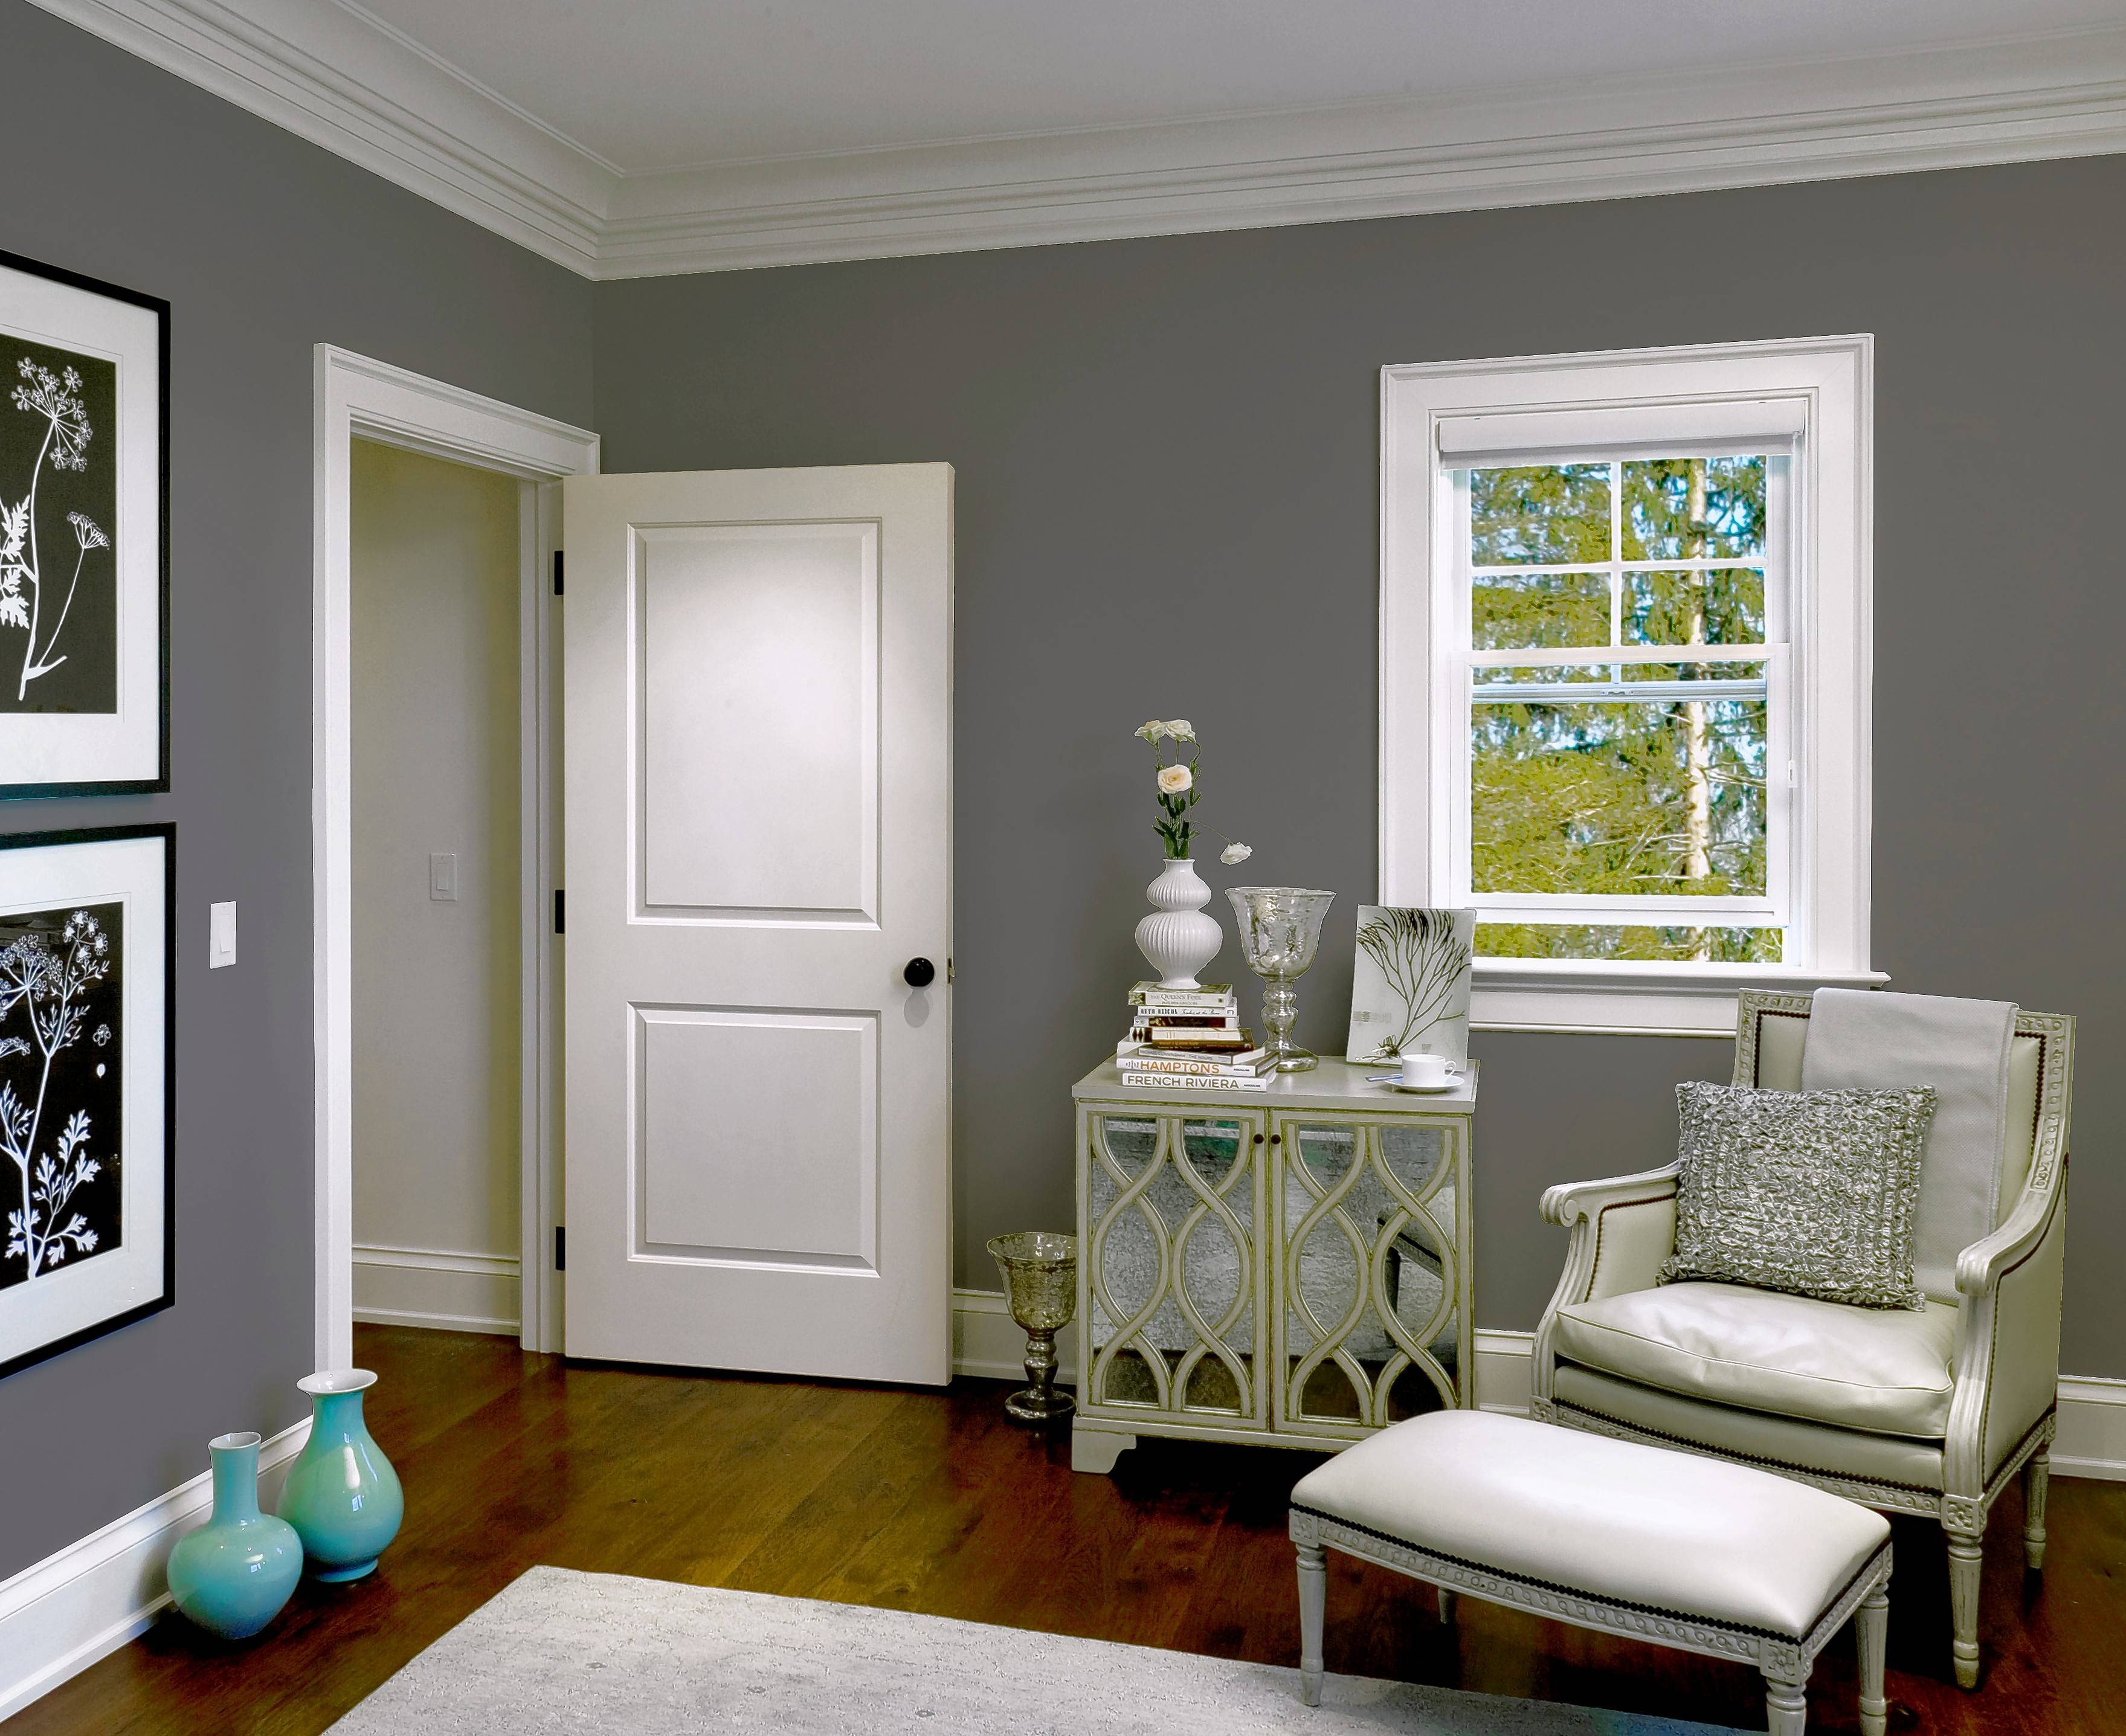 Two Panel Doors Are A Popular Selection For Their Simplicity And Clean  Lines.